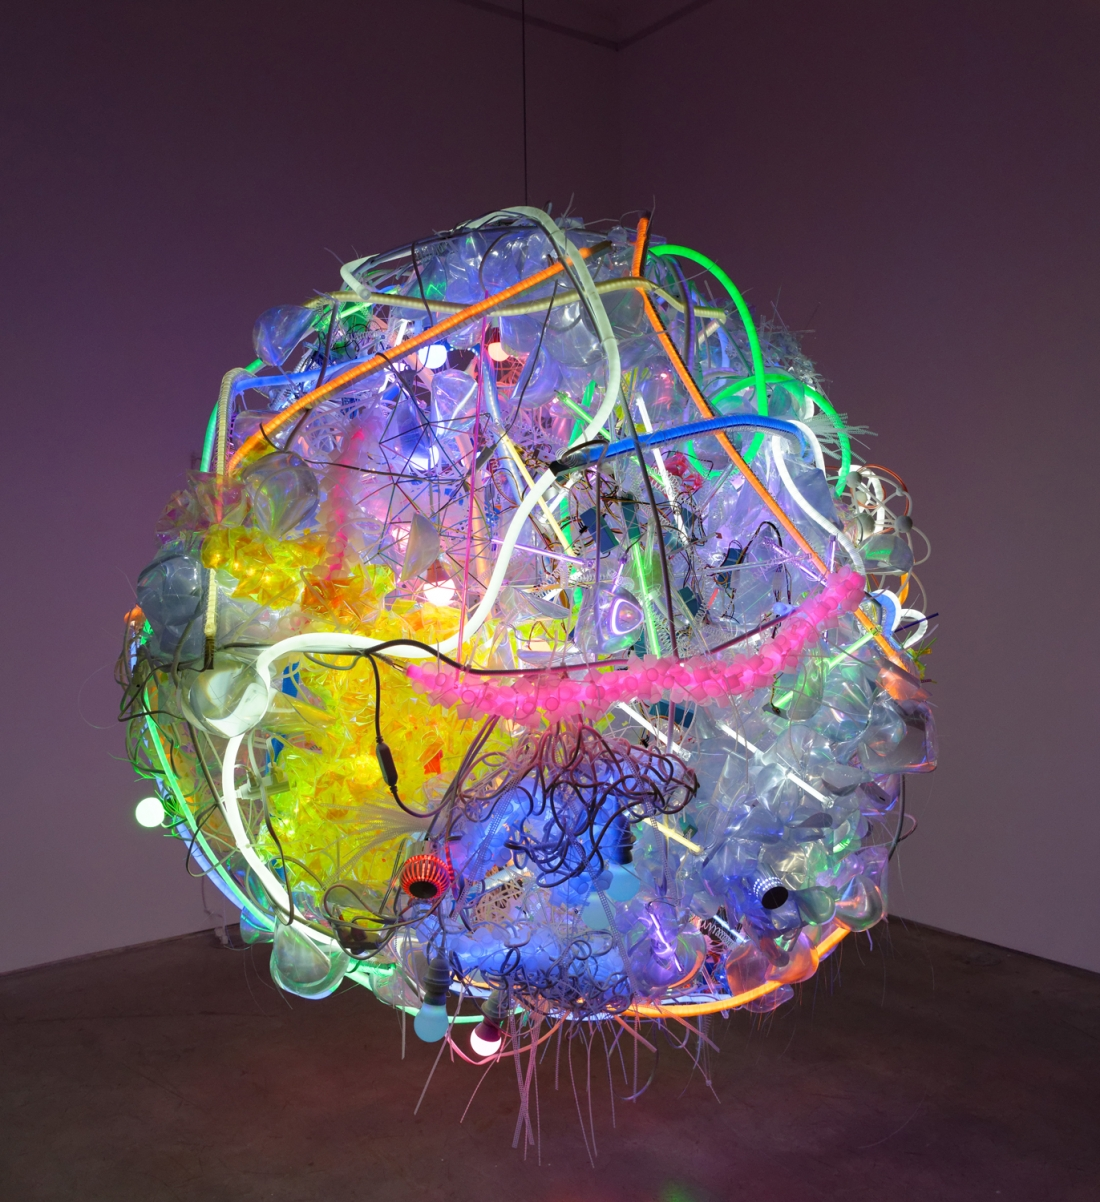 Bright And Chaotic Light Sculptures And Art Installations